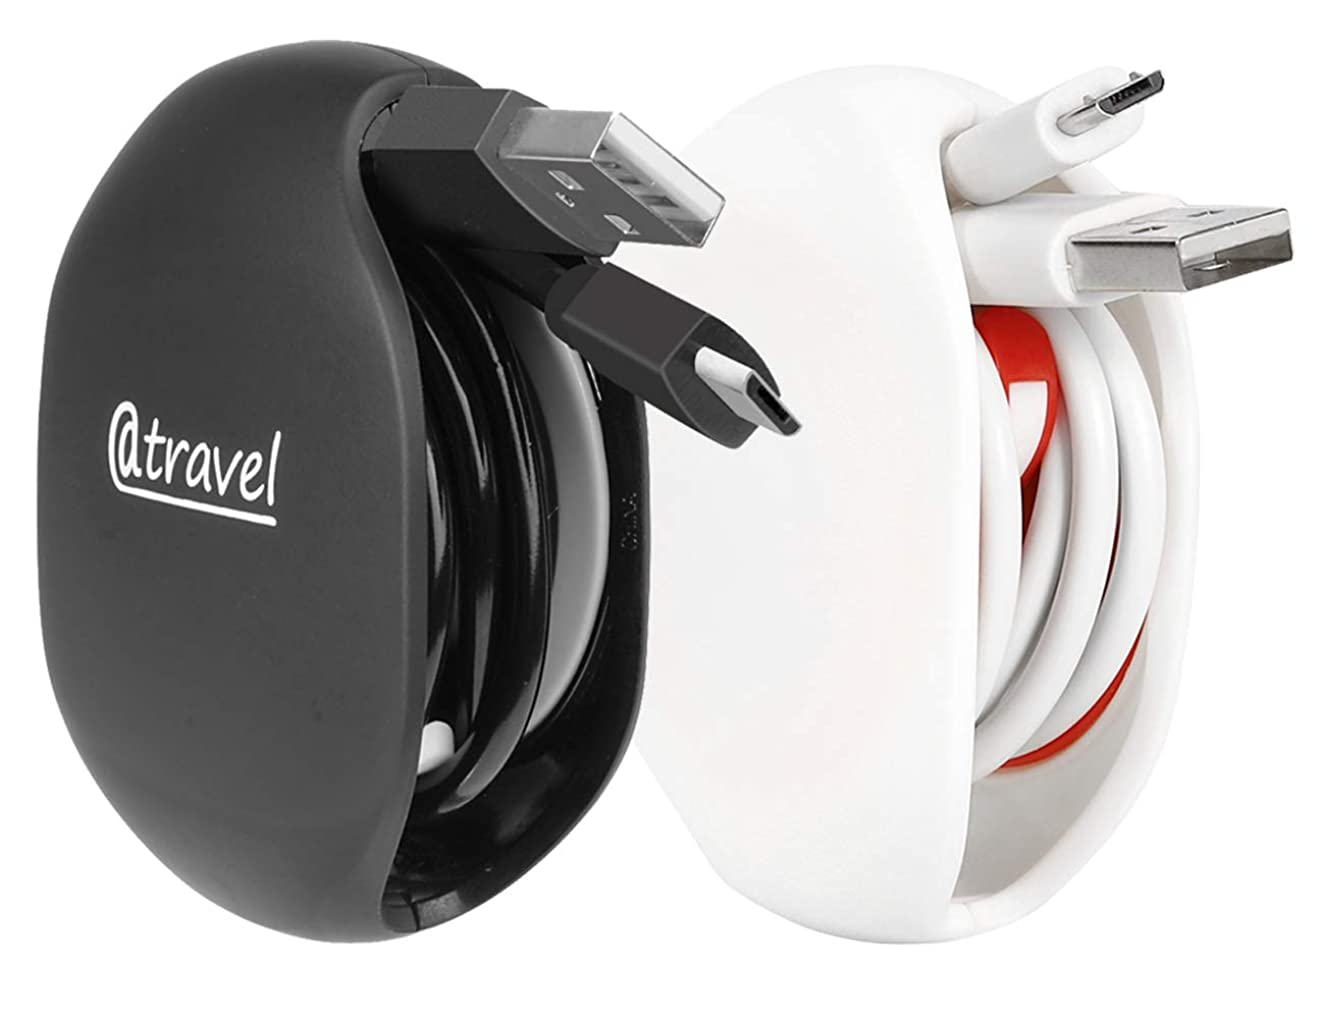 Portable Cord Master Solution for in-Ear Headphones, Earbuds, Cord, Wire, Automatic Cord Manager Combination, Multifunctional Organizer for Protection & Carry (Black+White)